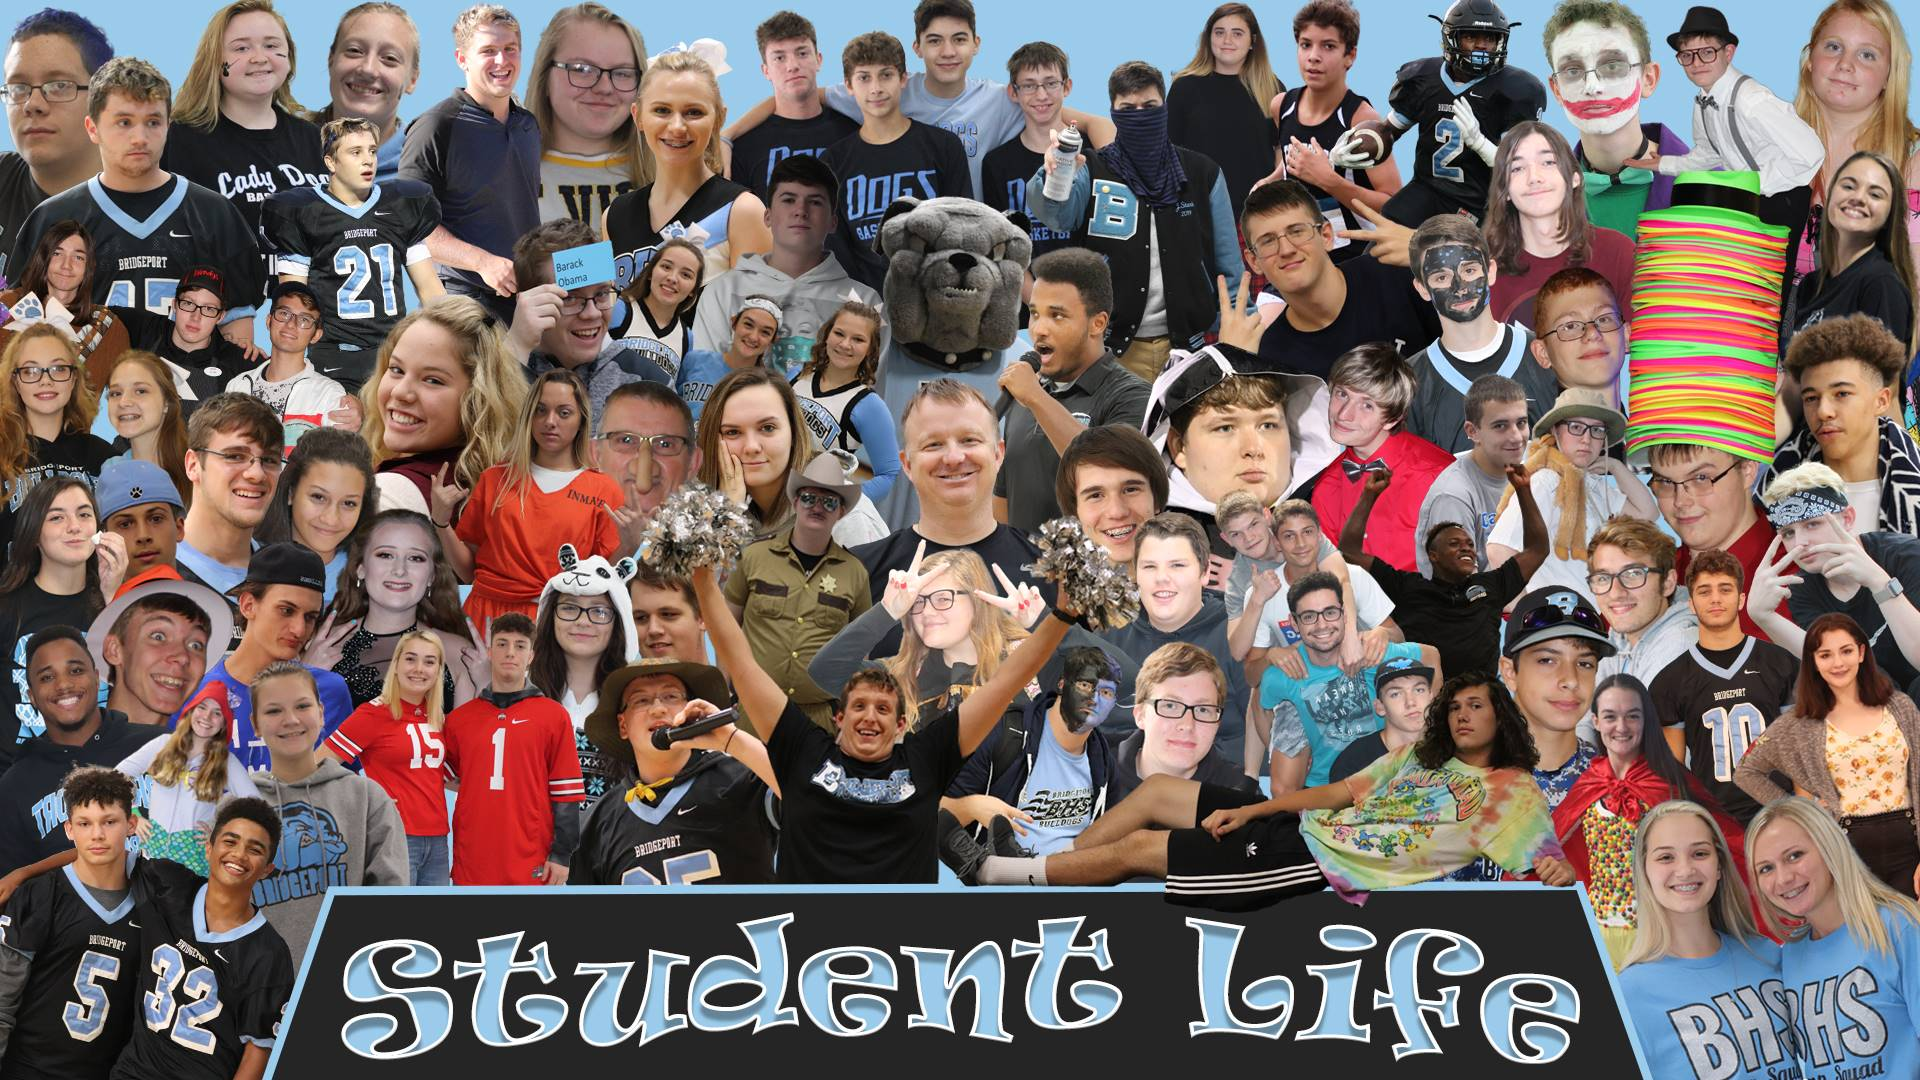 Student Life Composite Image